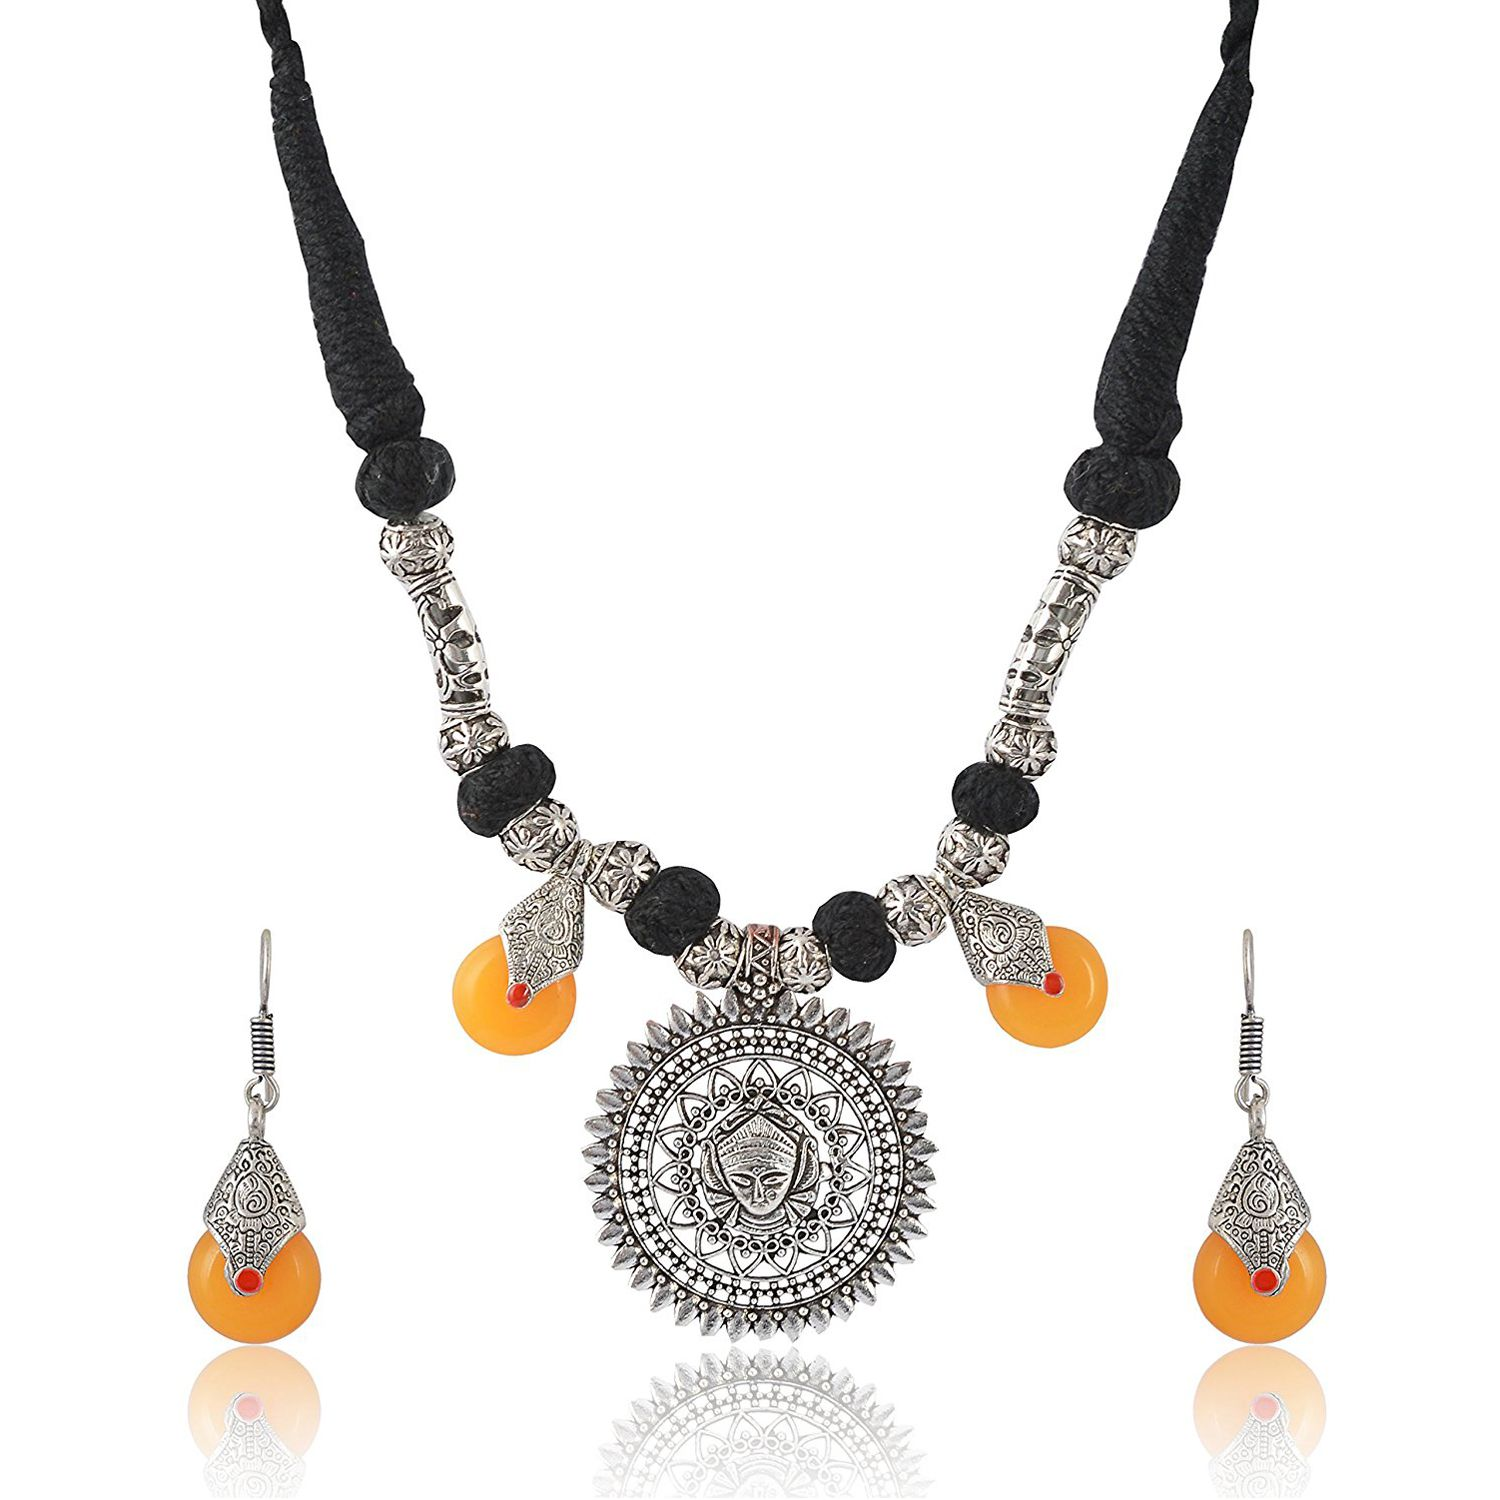 Goddess Durga Thread Necklace with Black Stone Earrings by D9 Creation